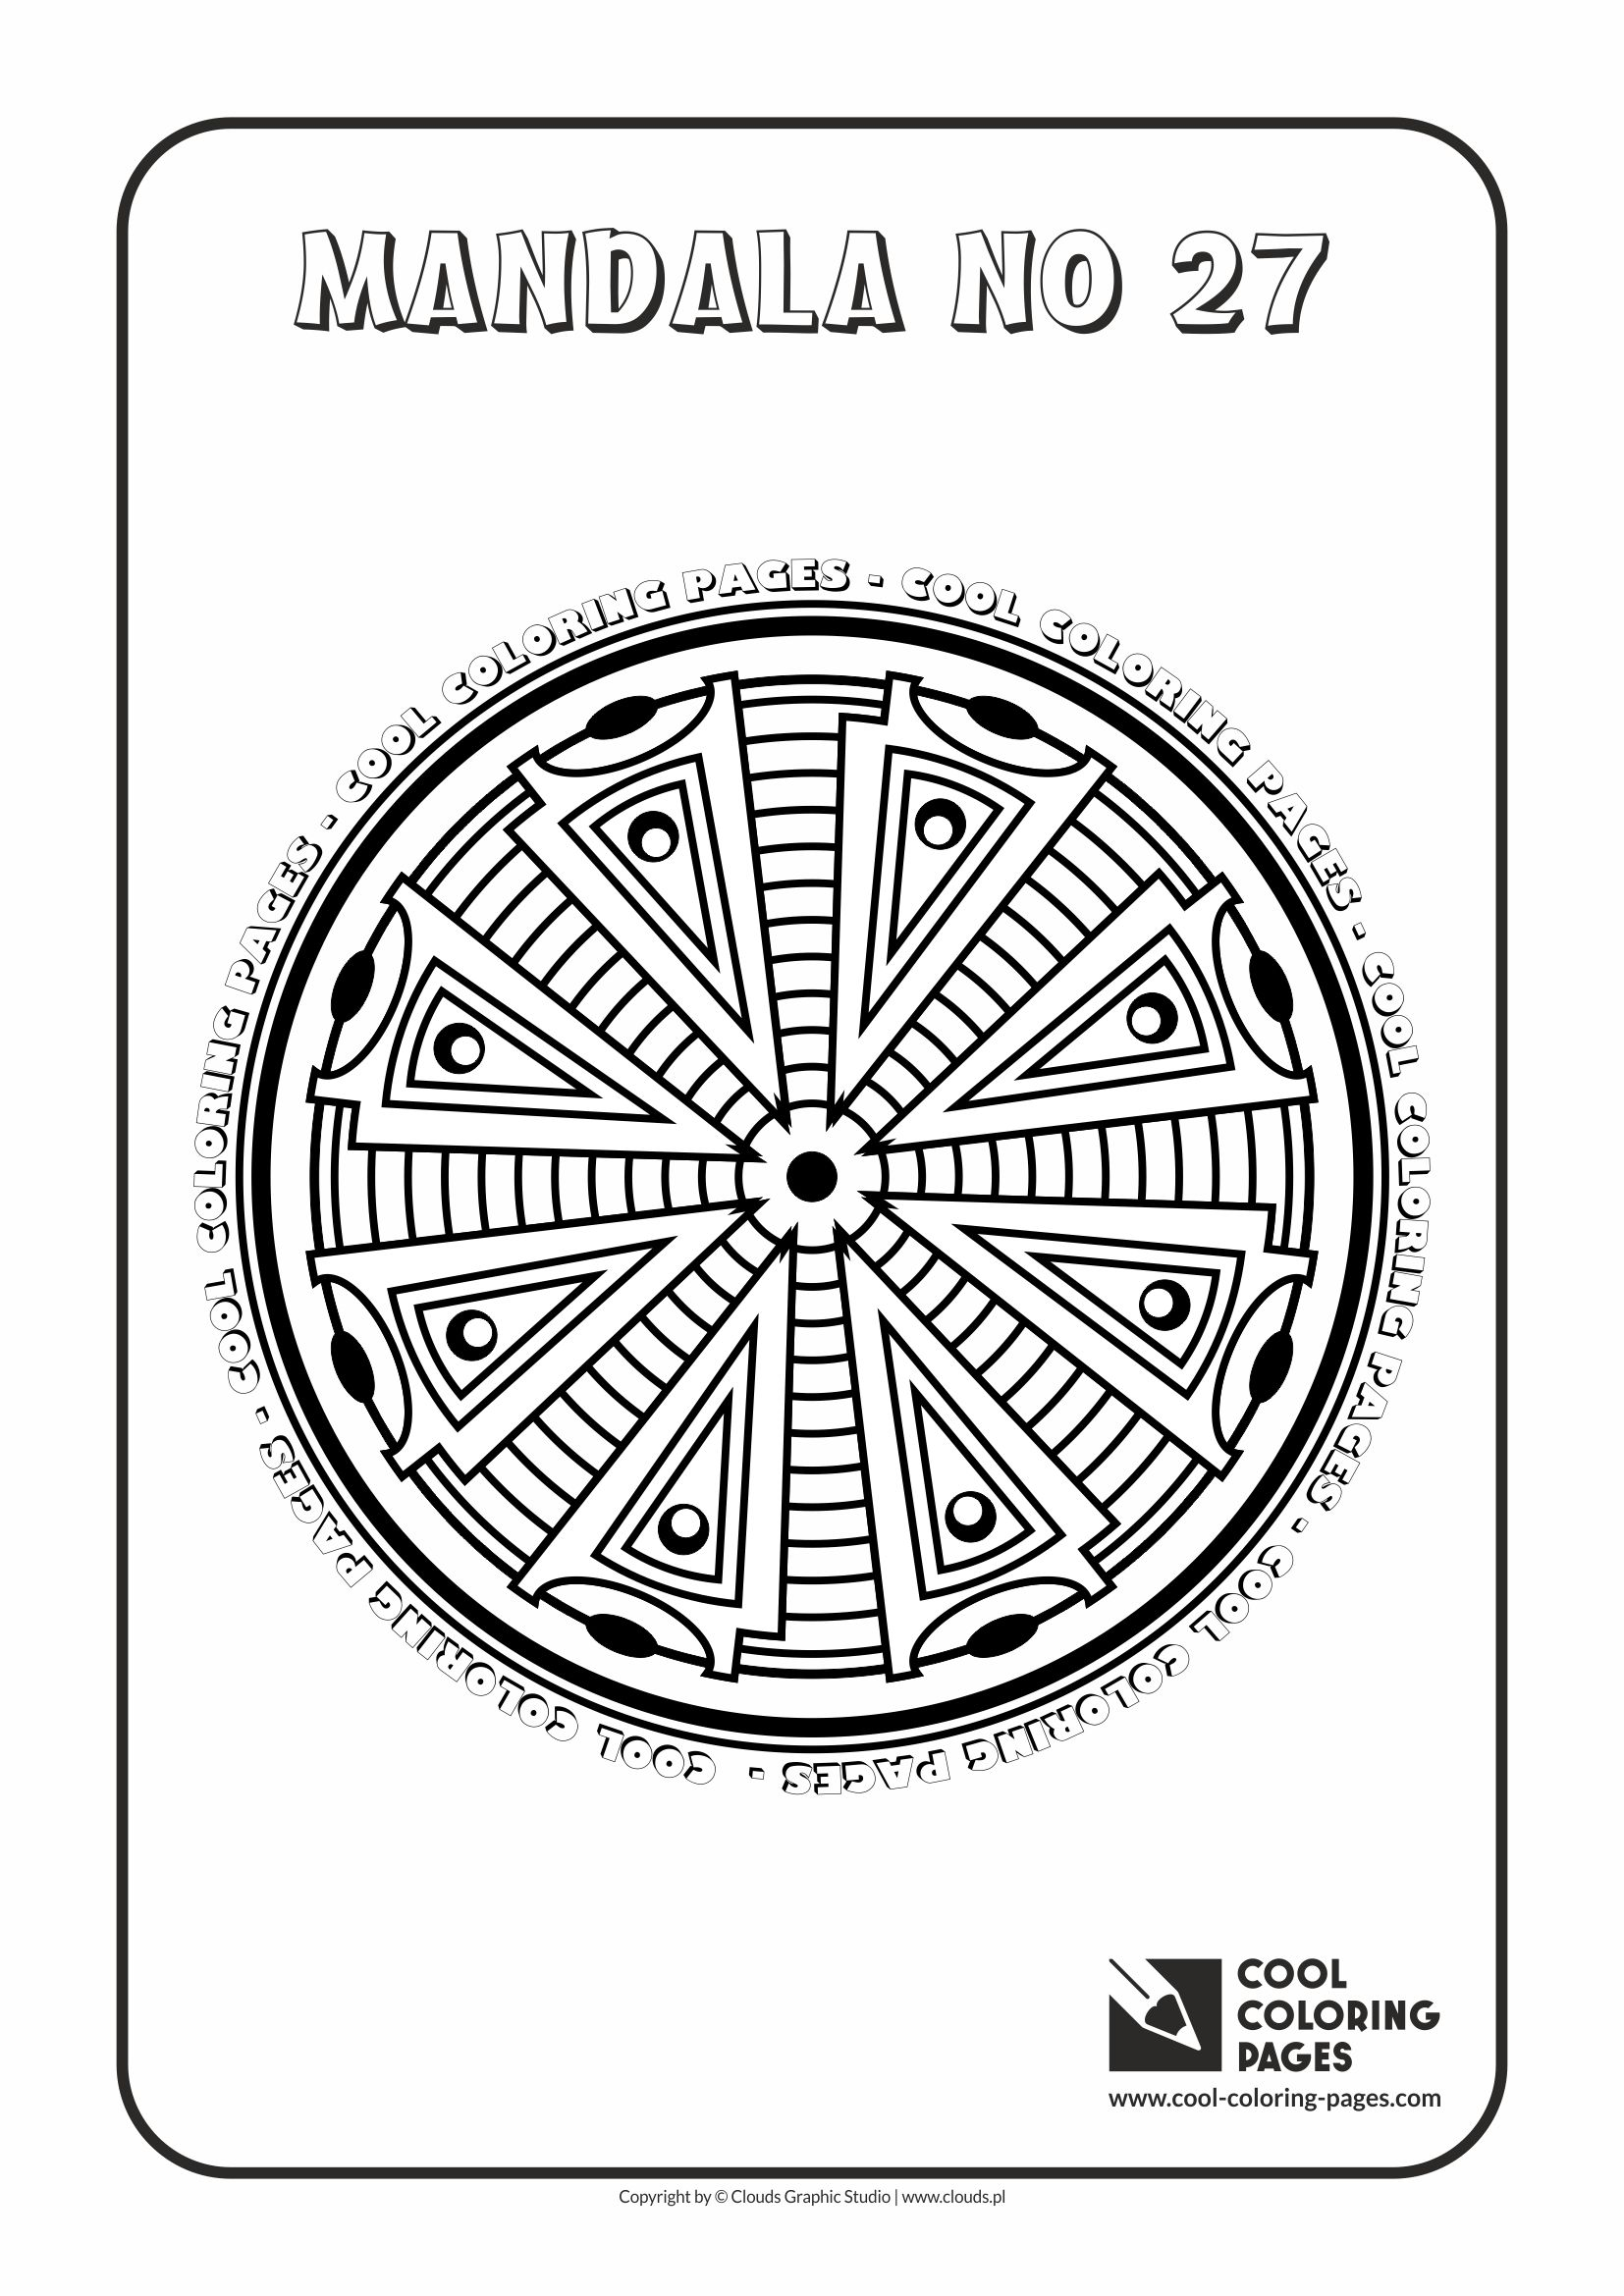 Cool Coloring Pages - Mandalas / Mandala no 27